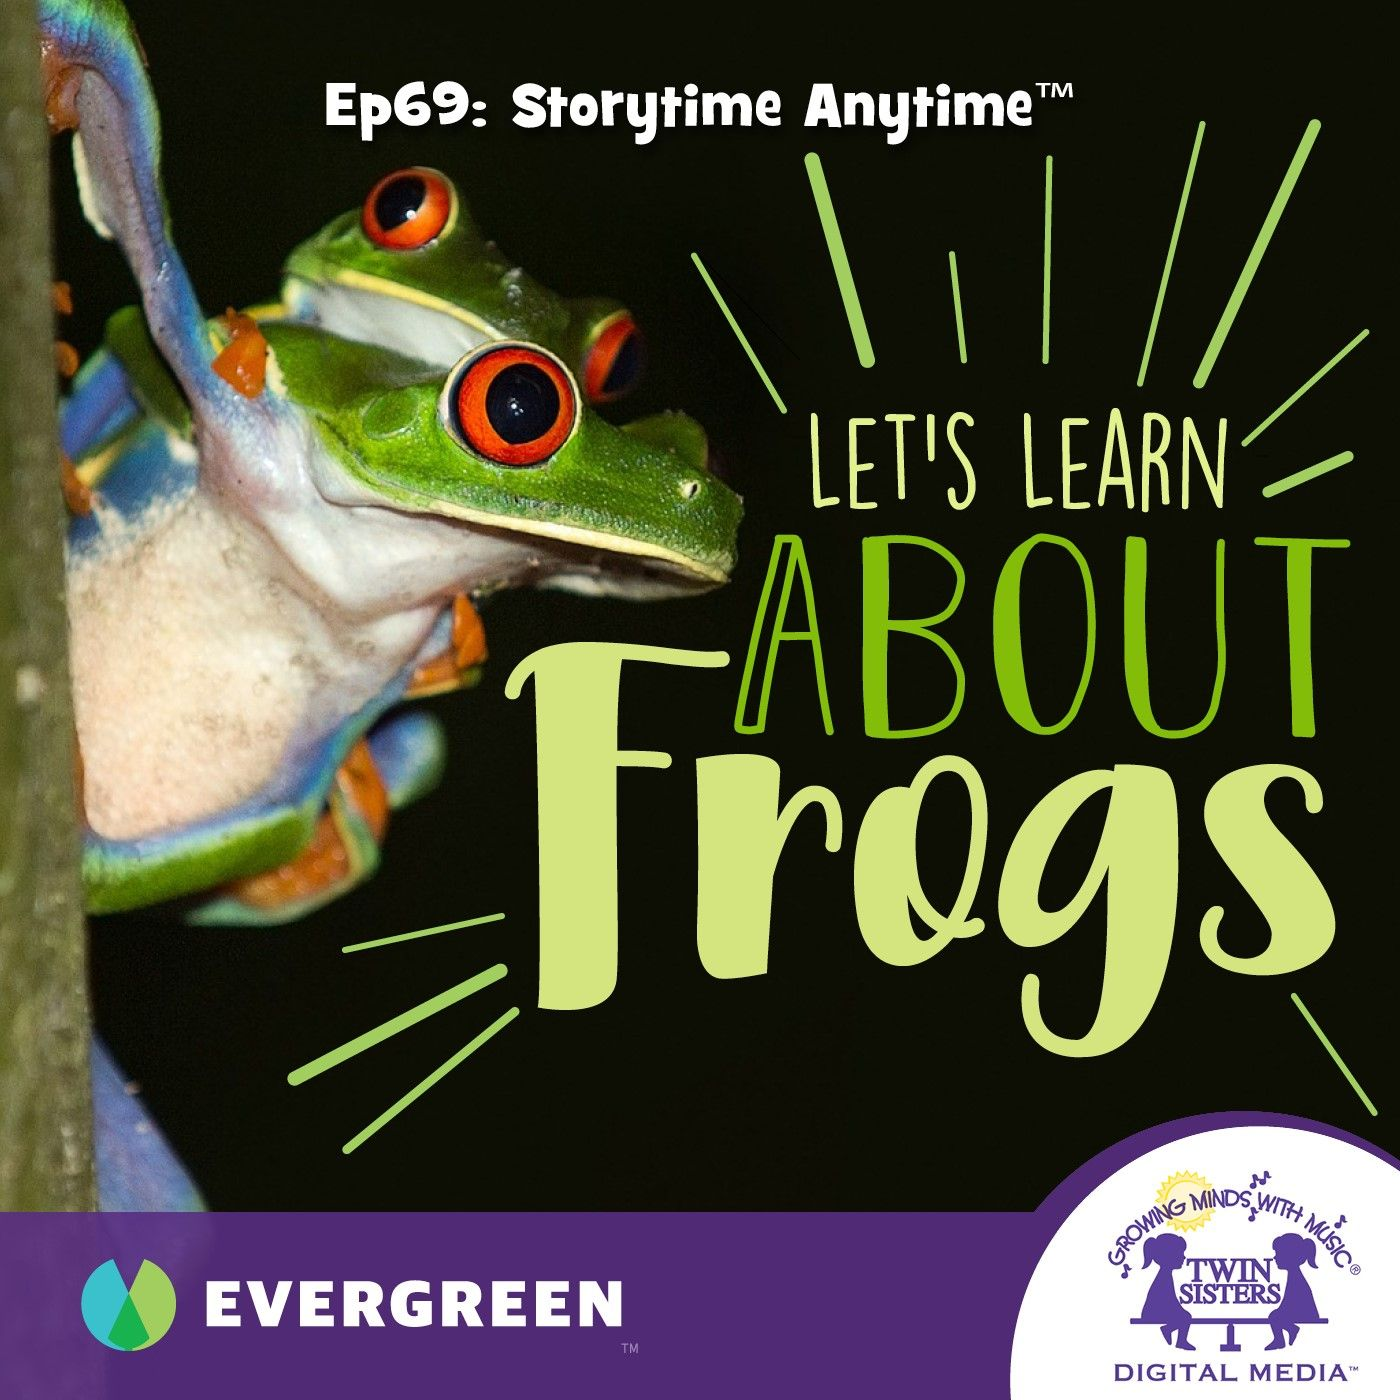 Let's Learn About Frogs